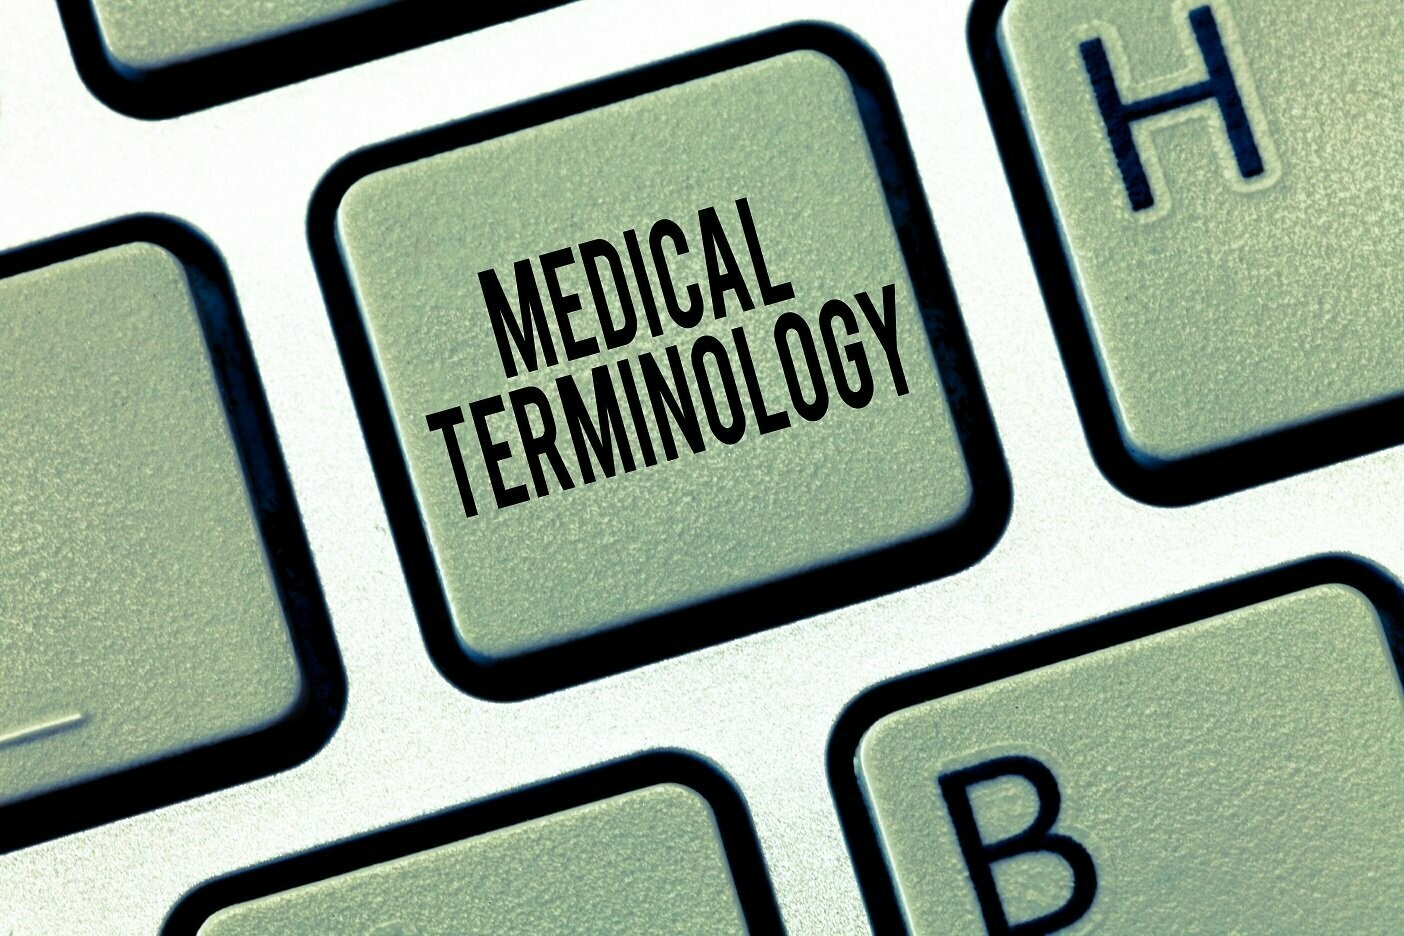 Bsmsa Medical Terminology For Beginners